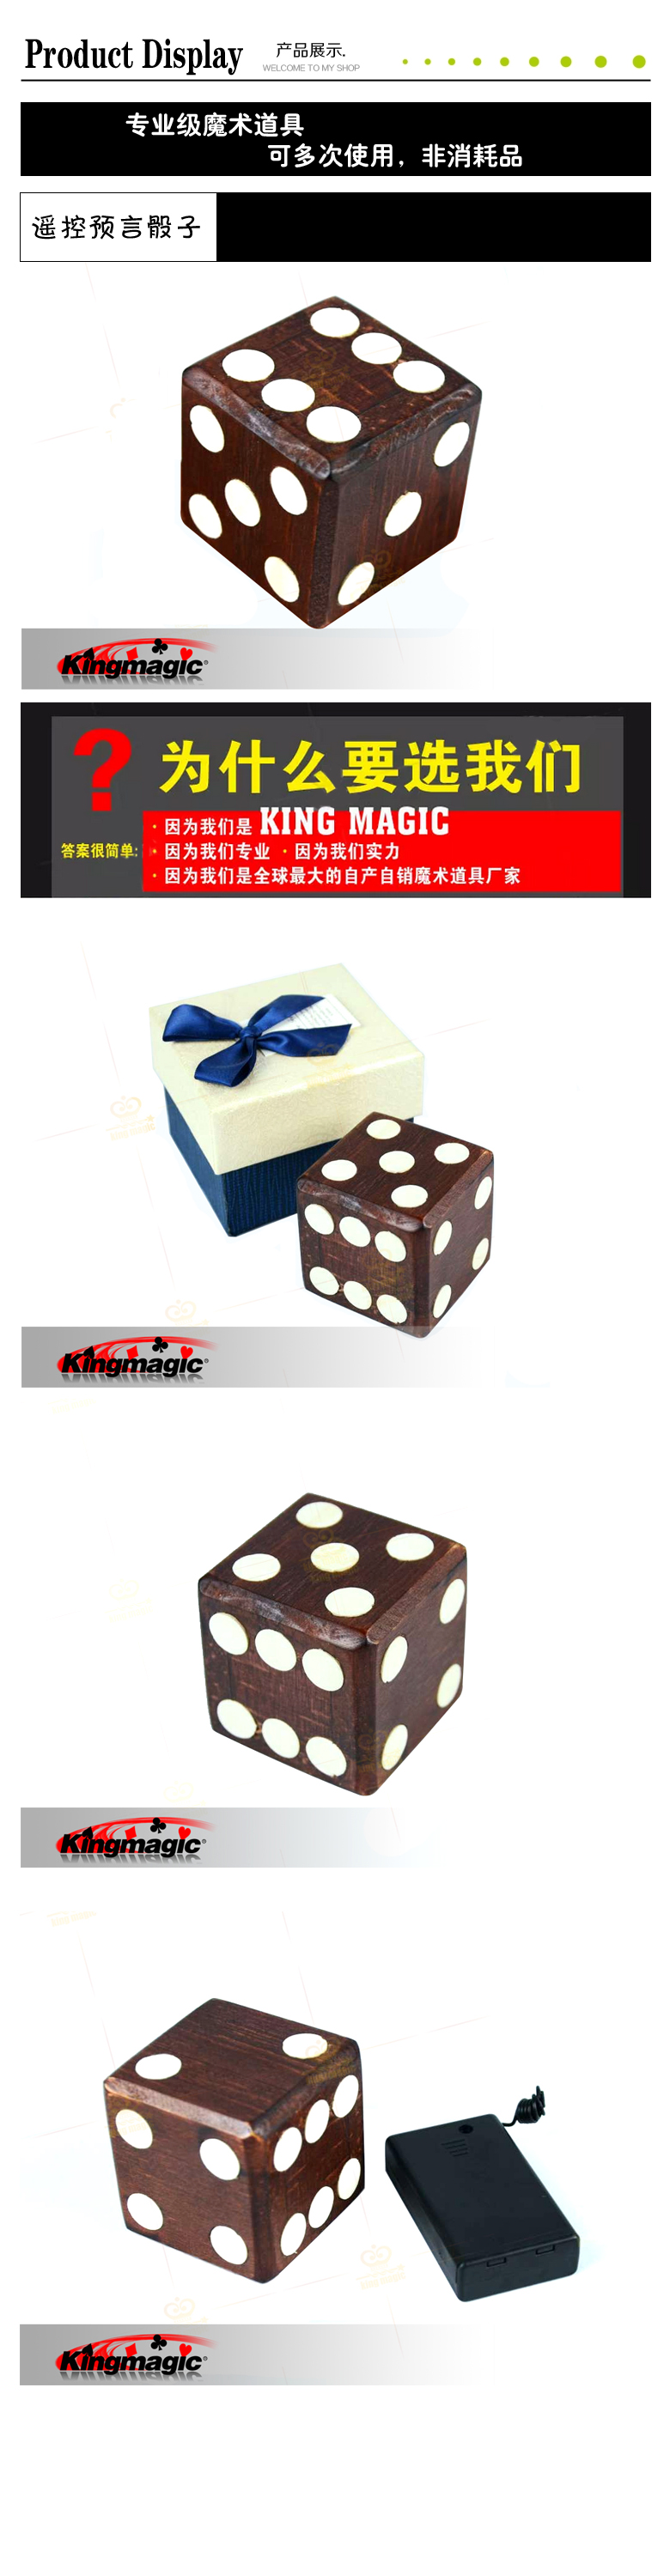 Magic Dice Prediction Electronic